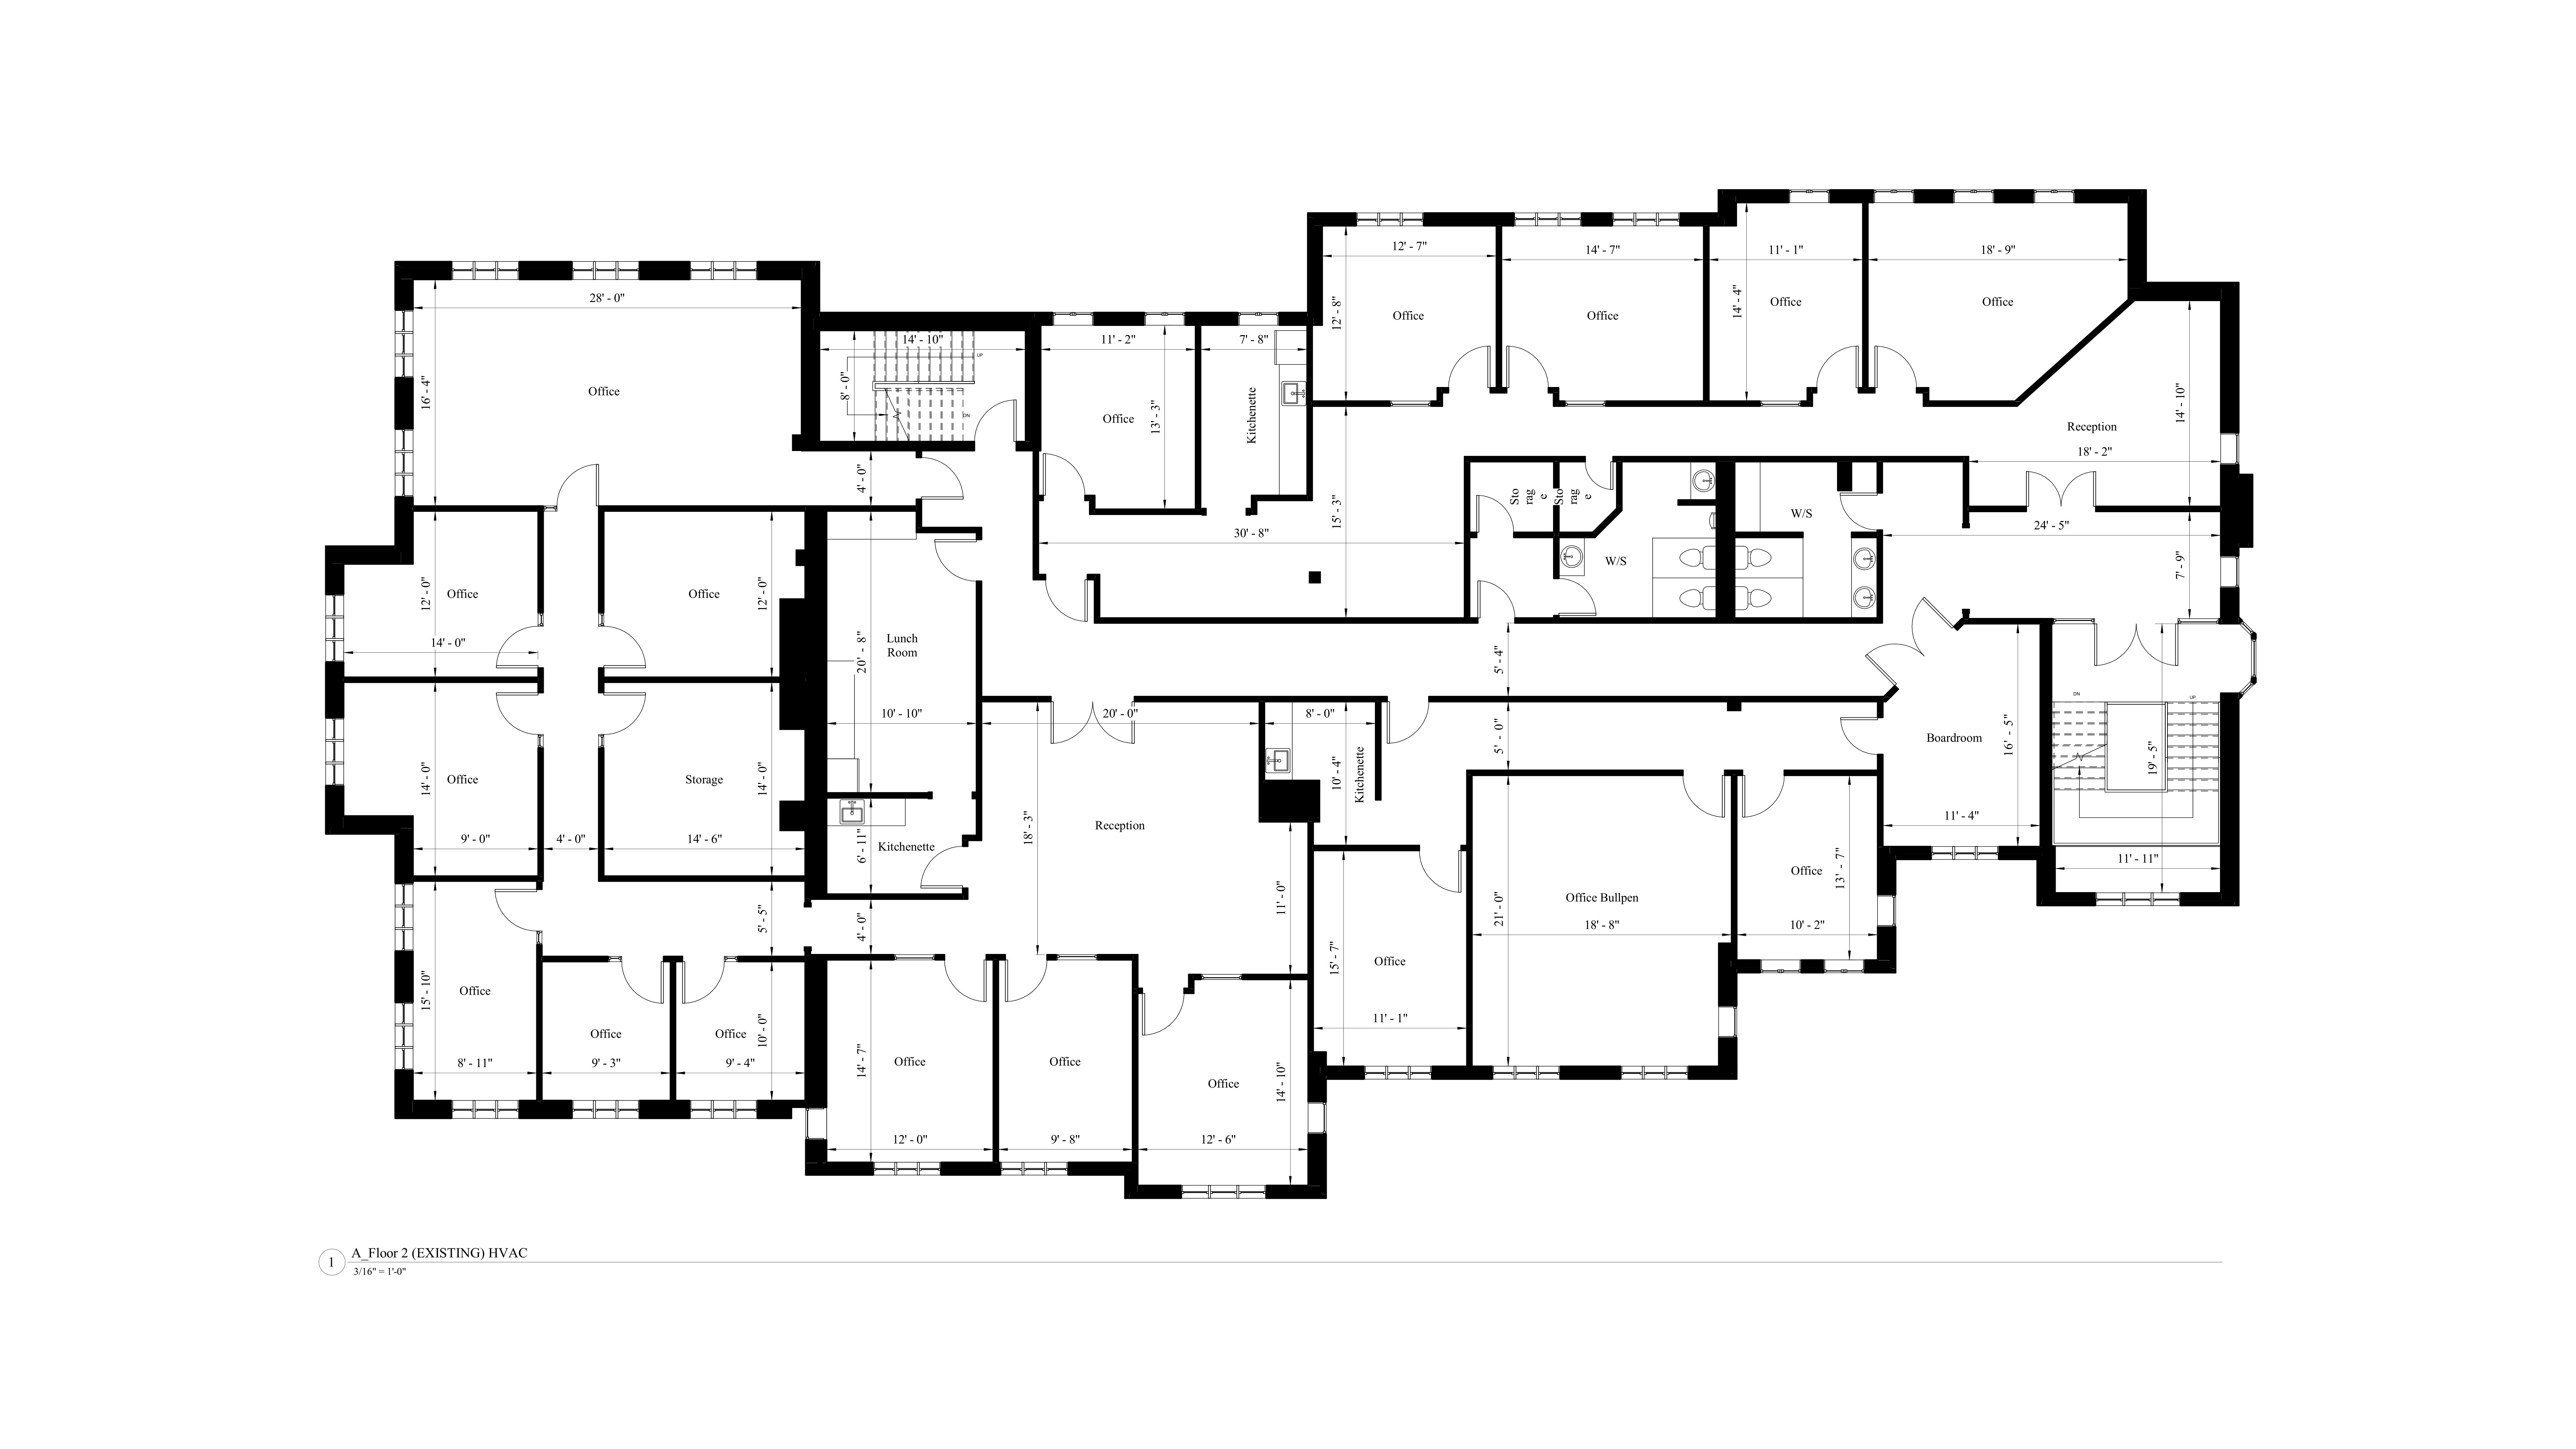 AutoCad drawing of the existing floor plan model for the second level of the commercial building.